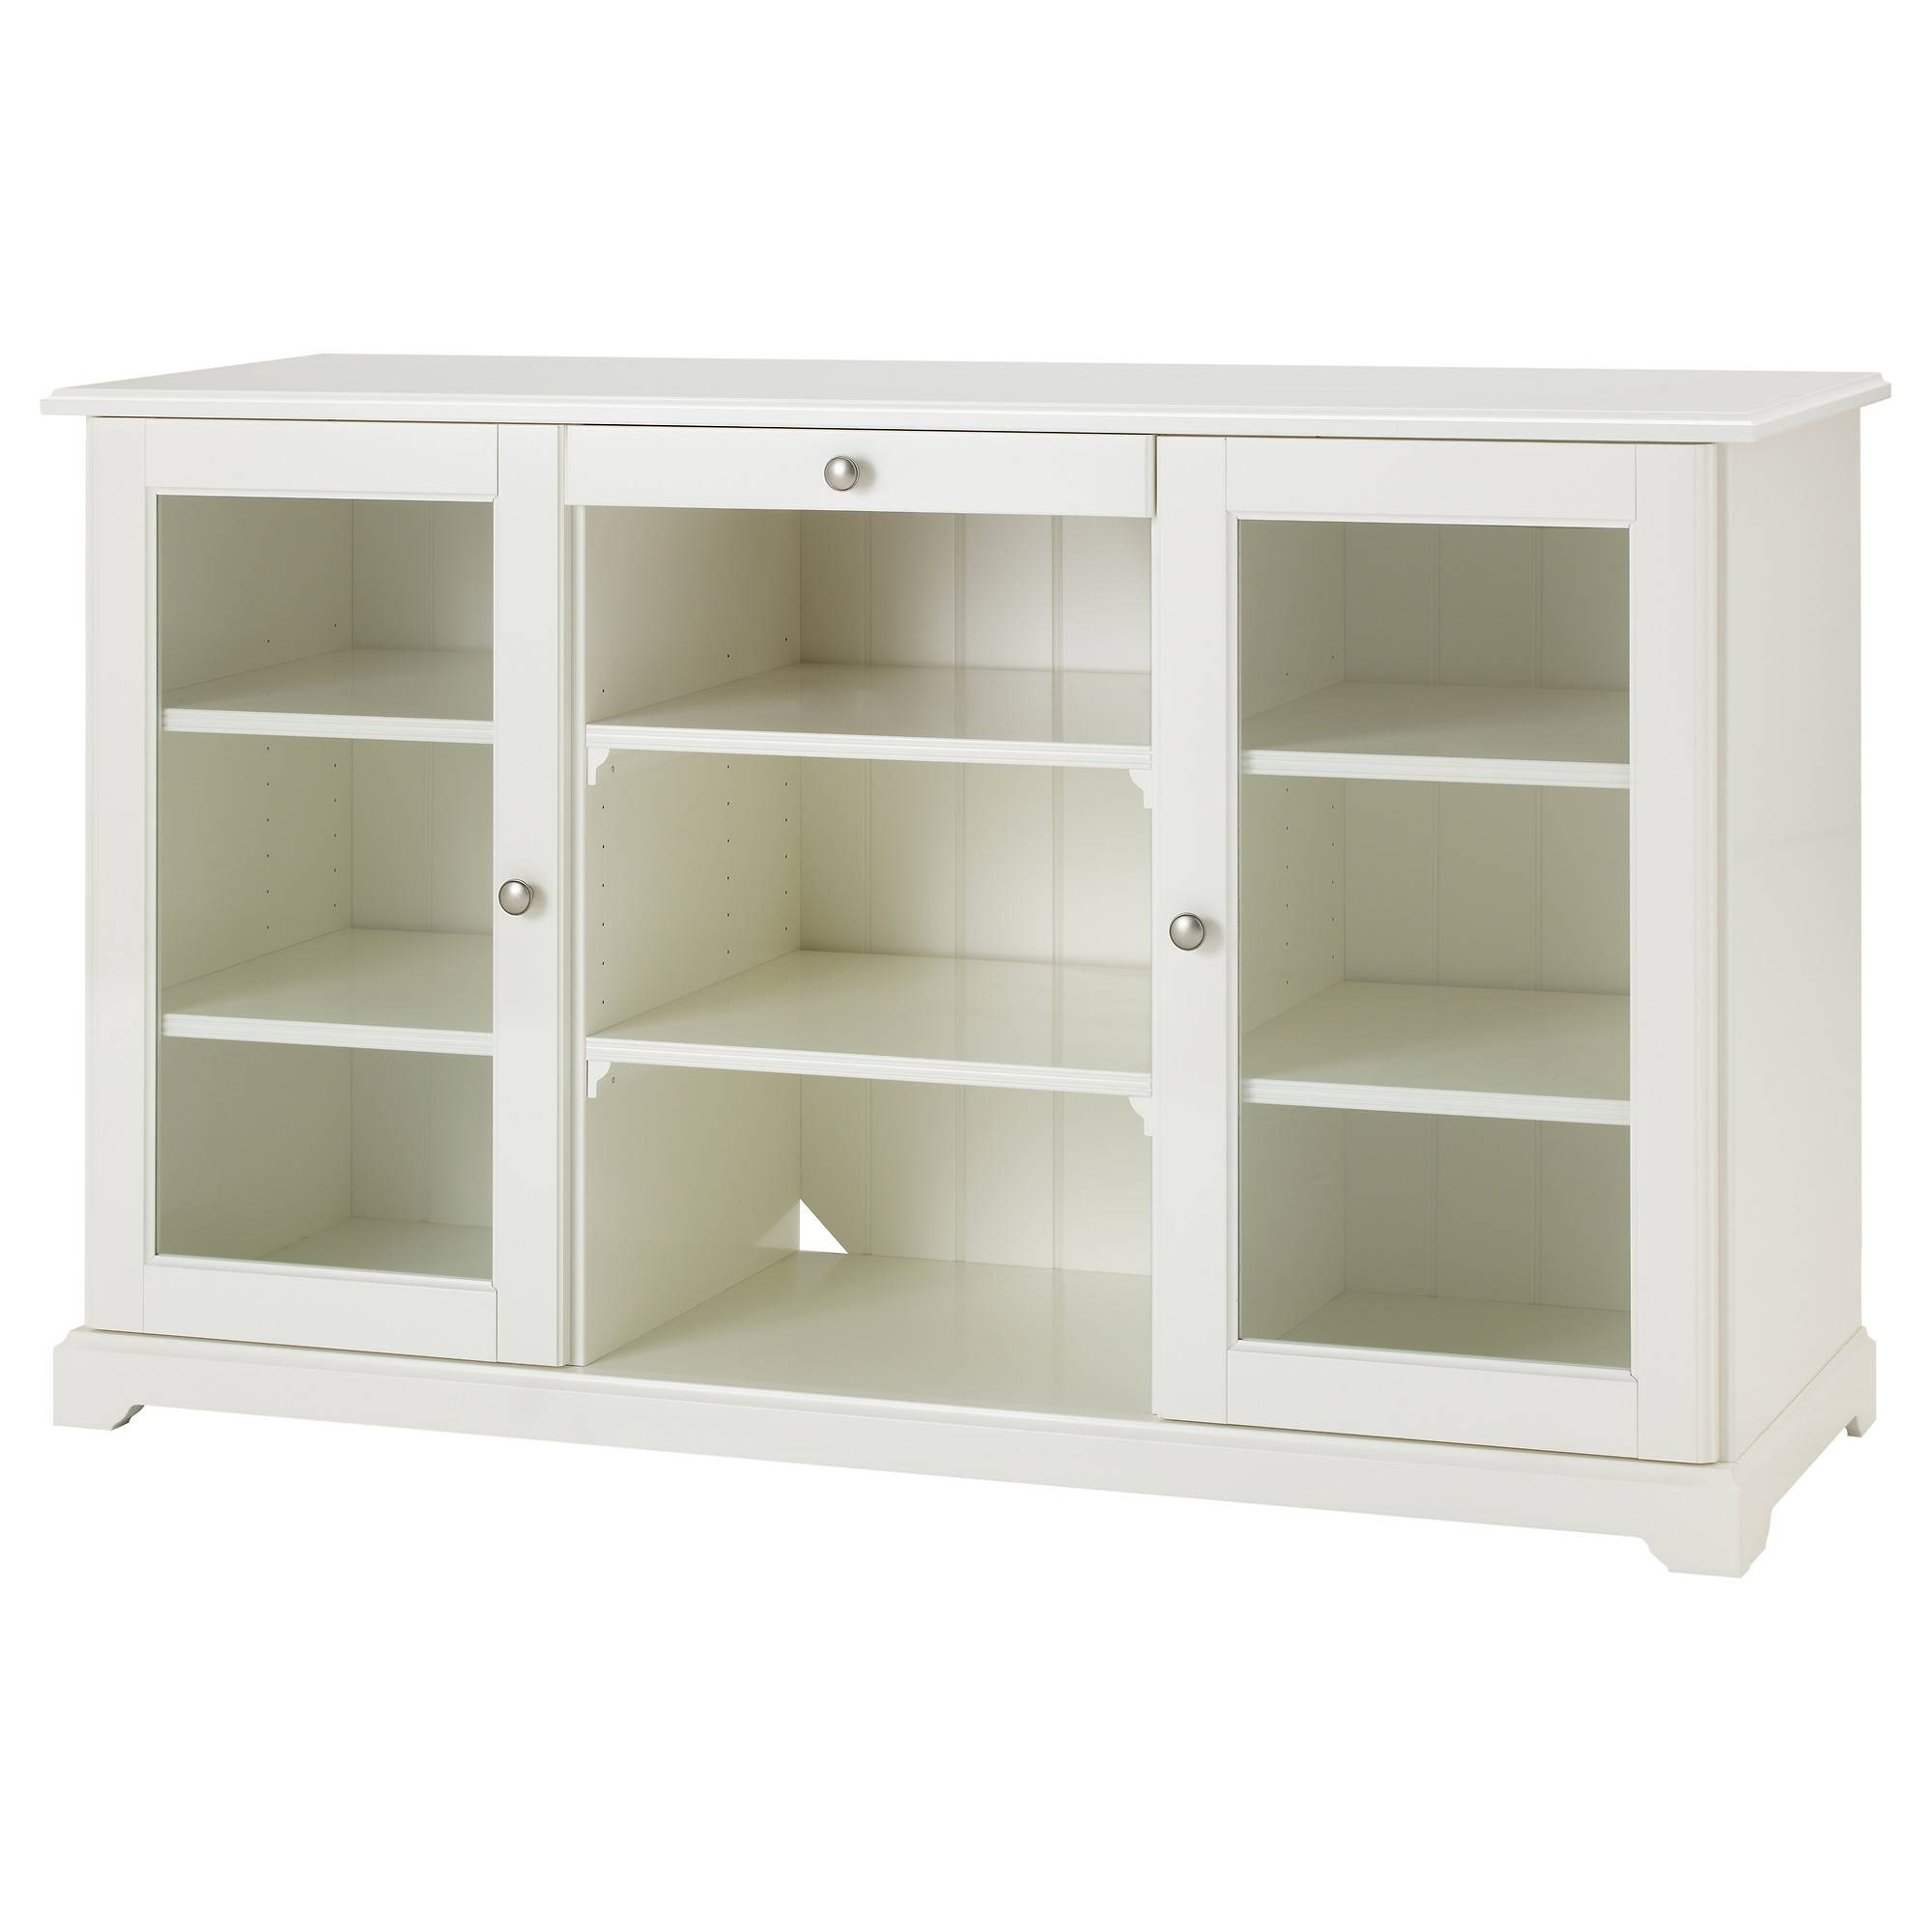 Buffet Tables & Sideboards - Ikea with regard to White Sideboards With Wine Rack (Image 6 of 30)